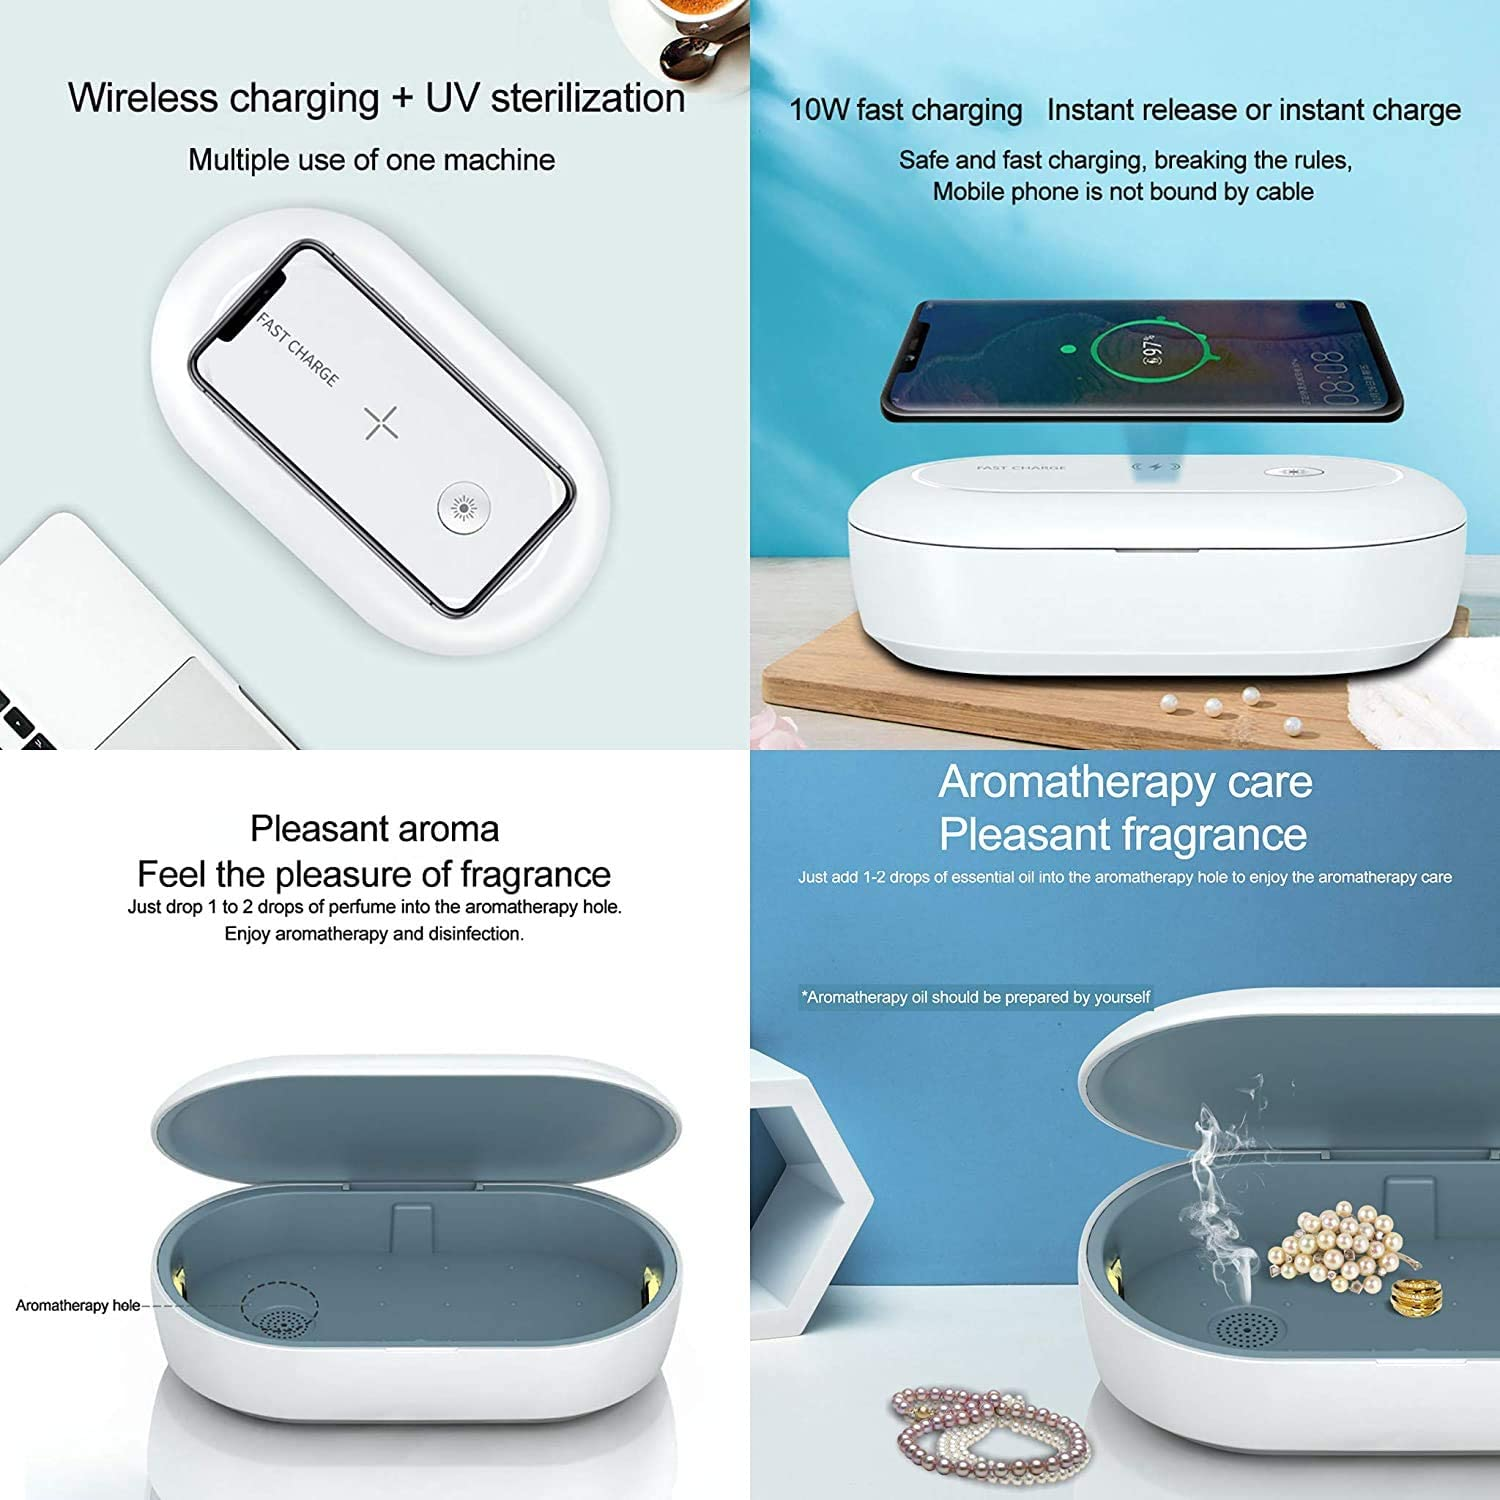 Mobile Phone Ultraviolet Light Mask Sanitizer UV-Clean Disinfection Wireless Charger for Face Mask Toothbrush Watches Fast /& Effective Sterilization Disinfector Box Jewelry Makeup Tools